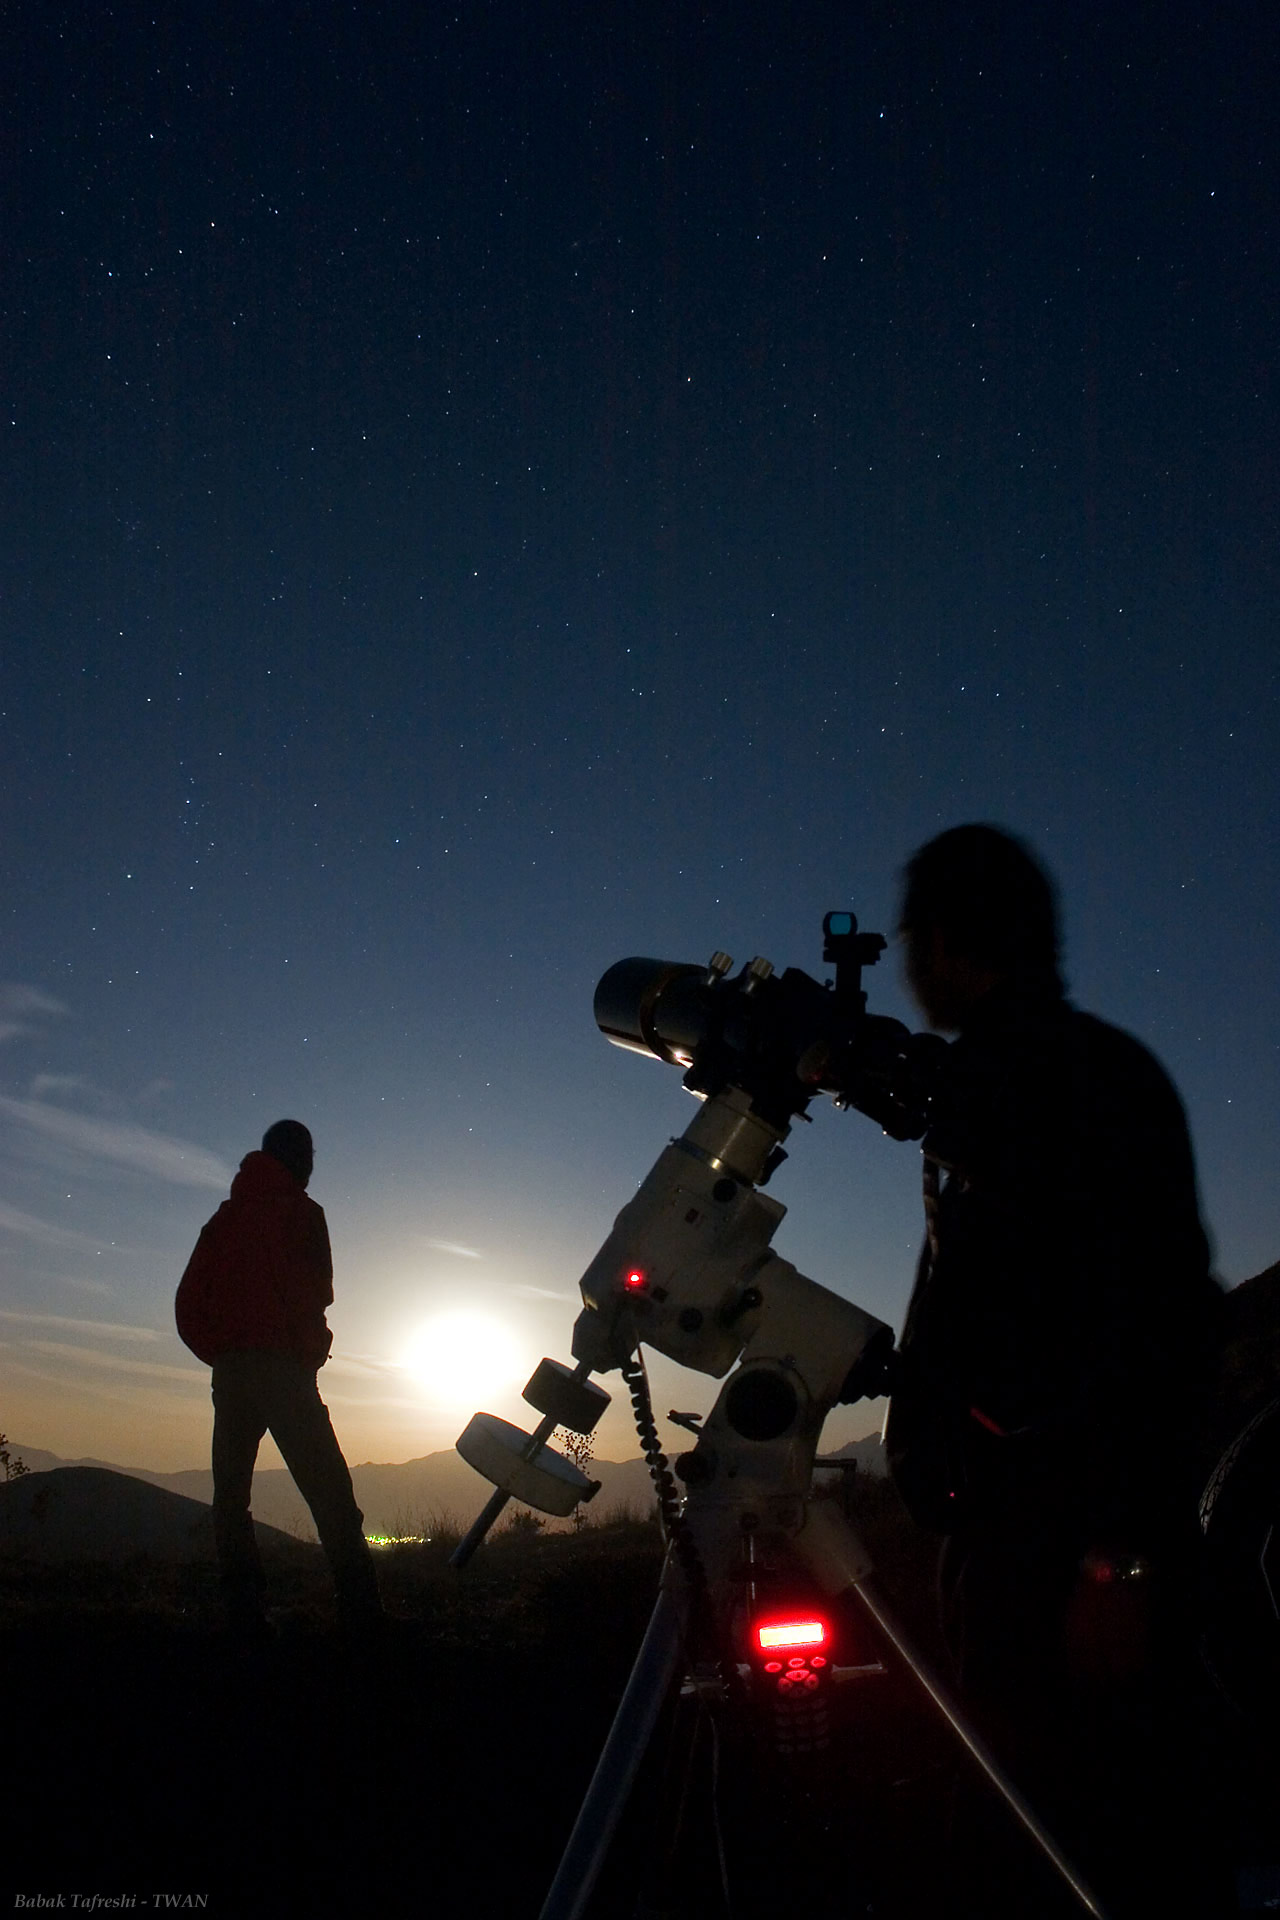 Star Party on Planet Earth